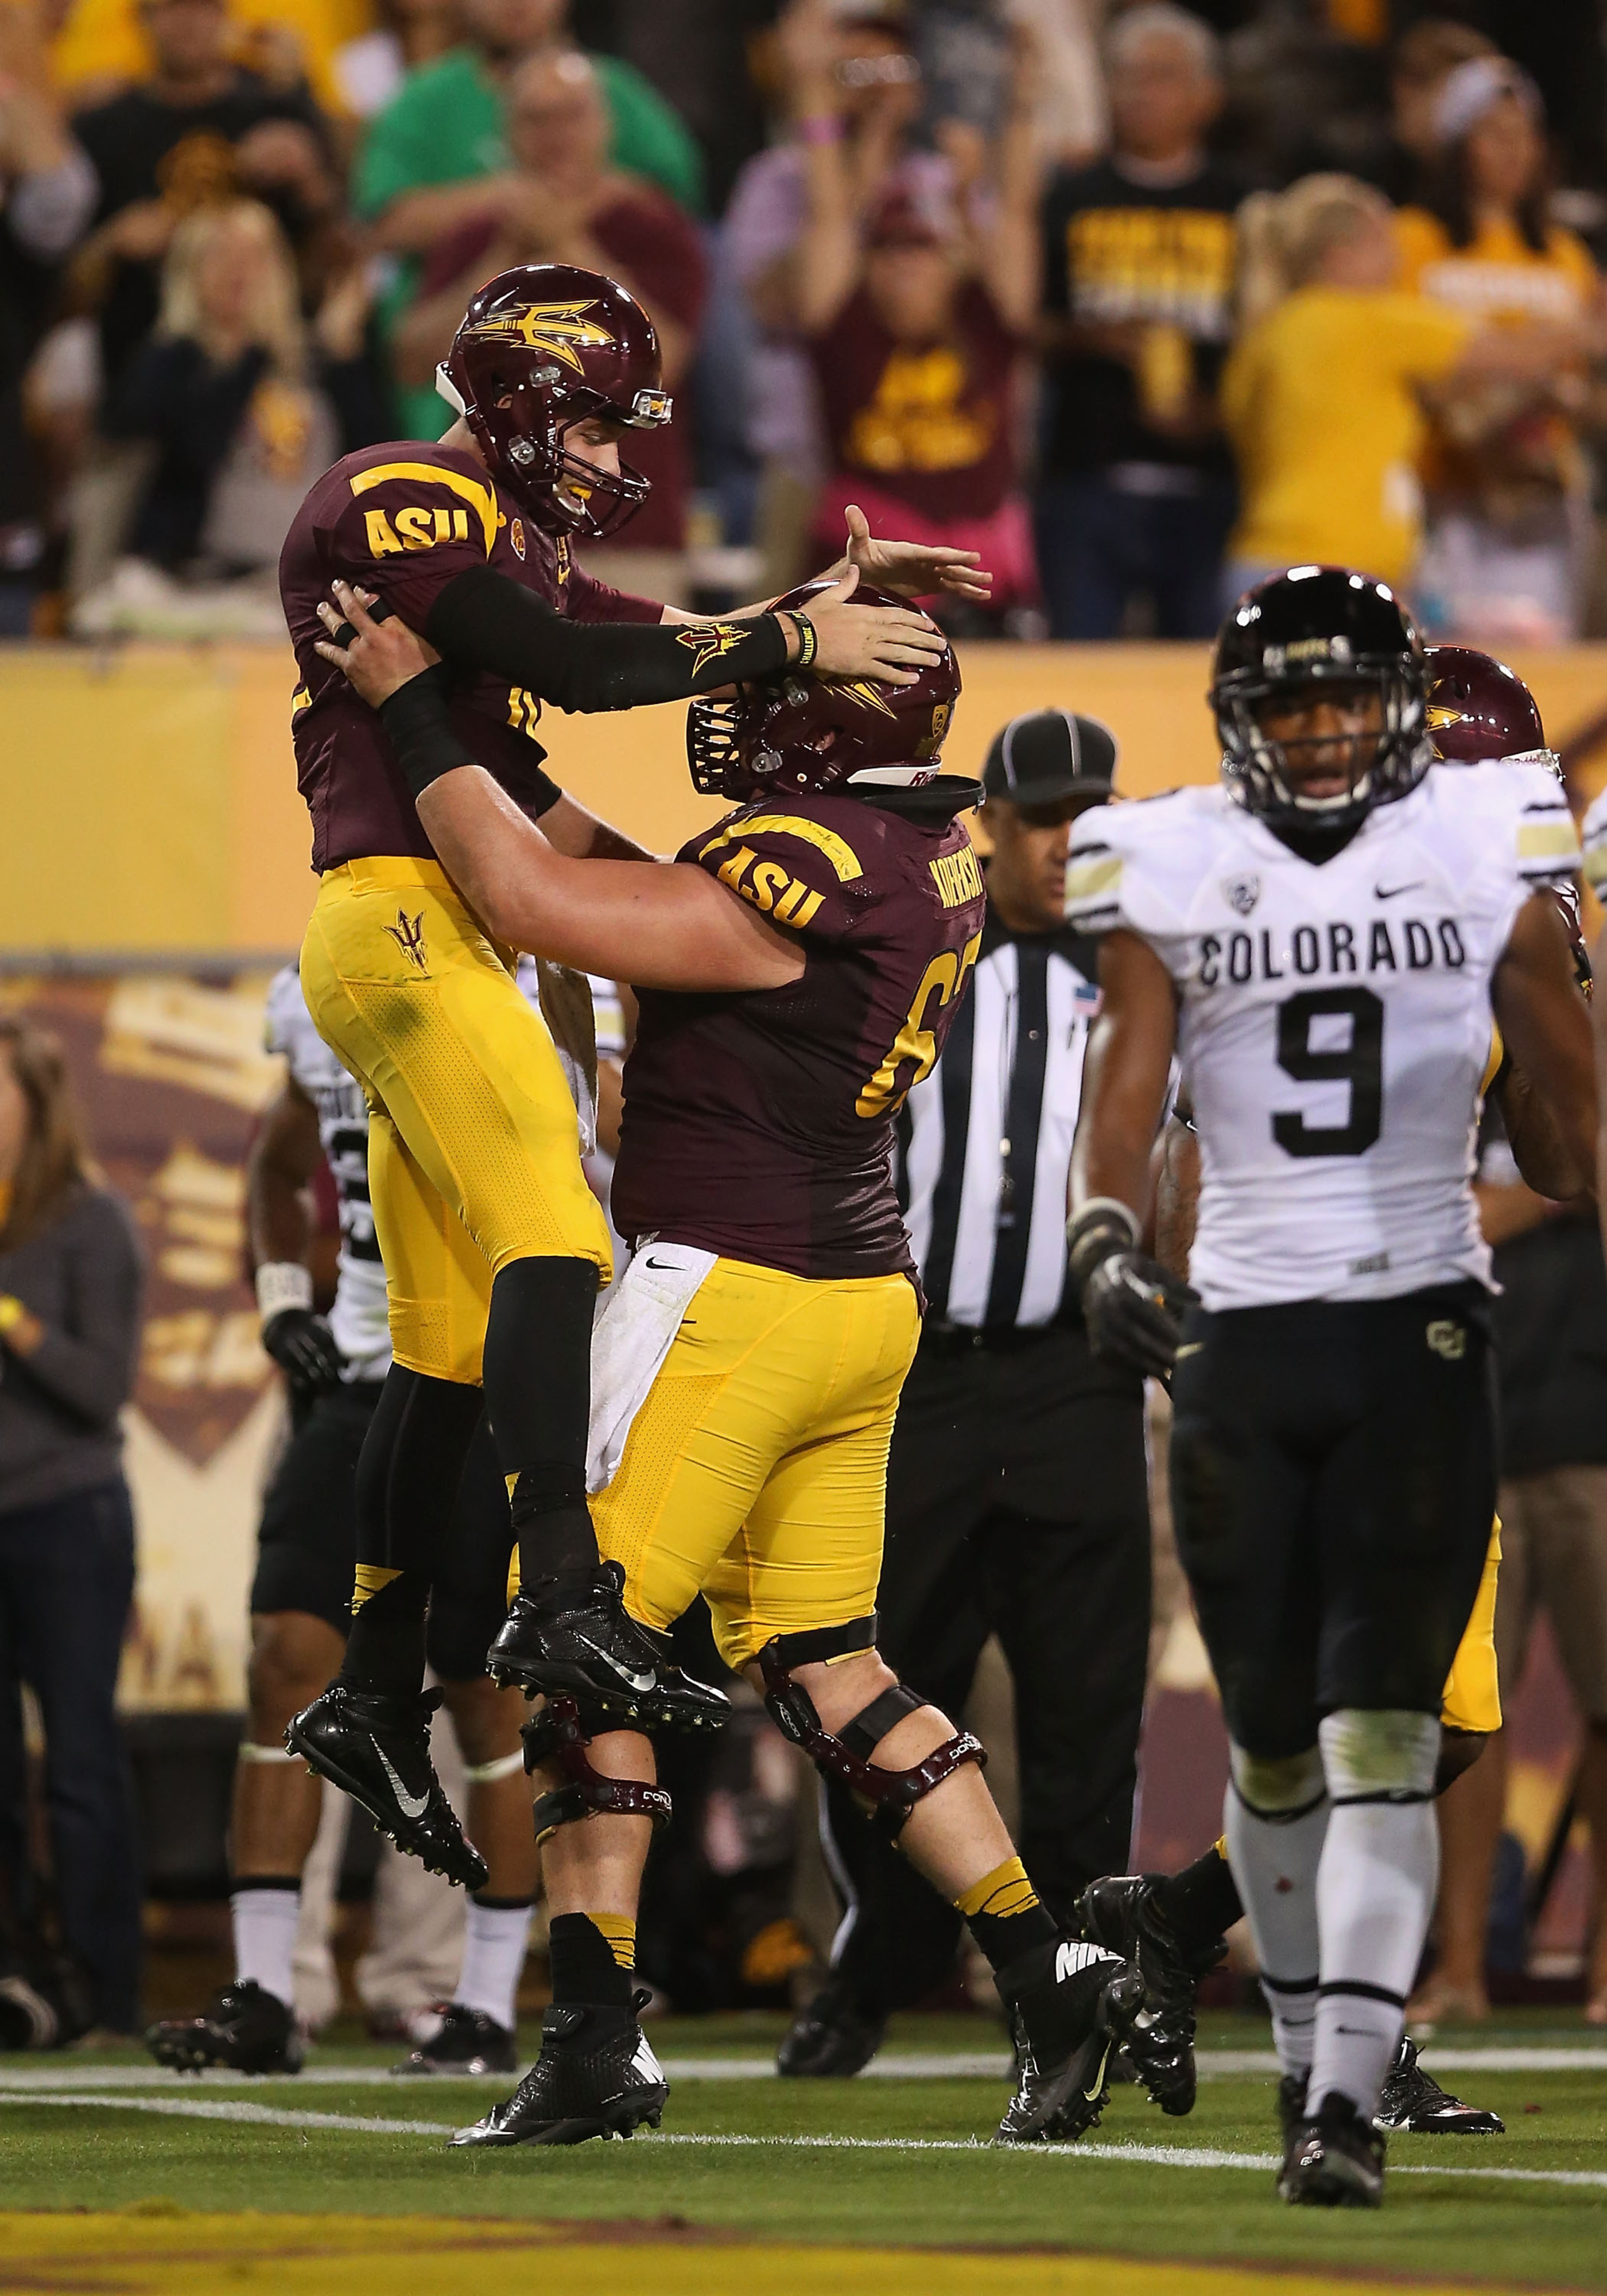 Taylor Kelly threw for 223 yards and two touchdowns in the first half of a 54-13 victory over Colorado.